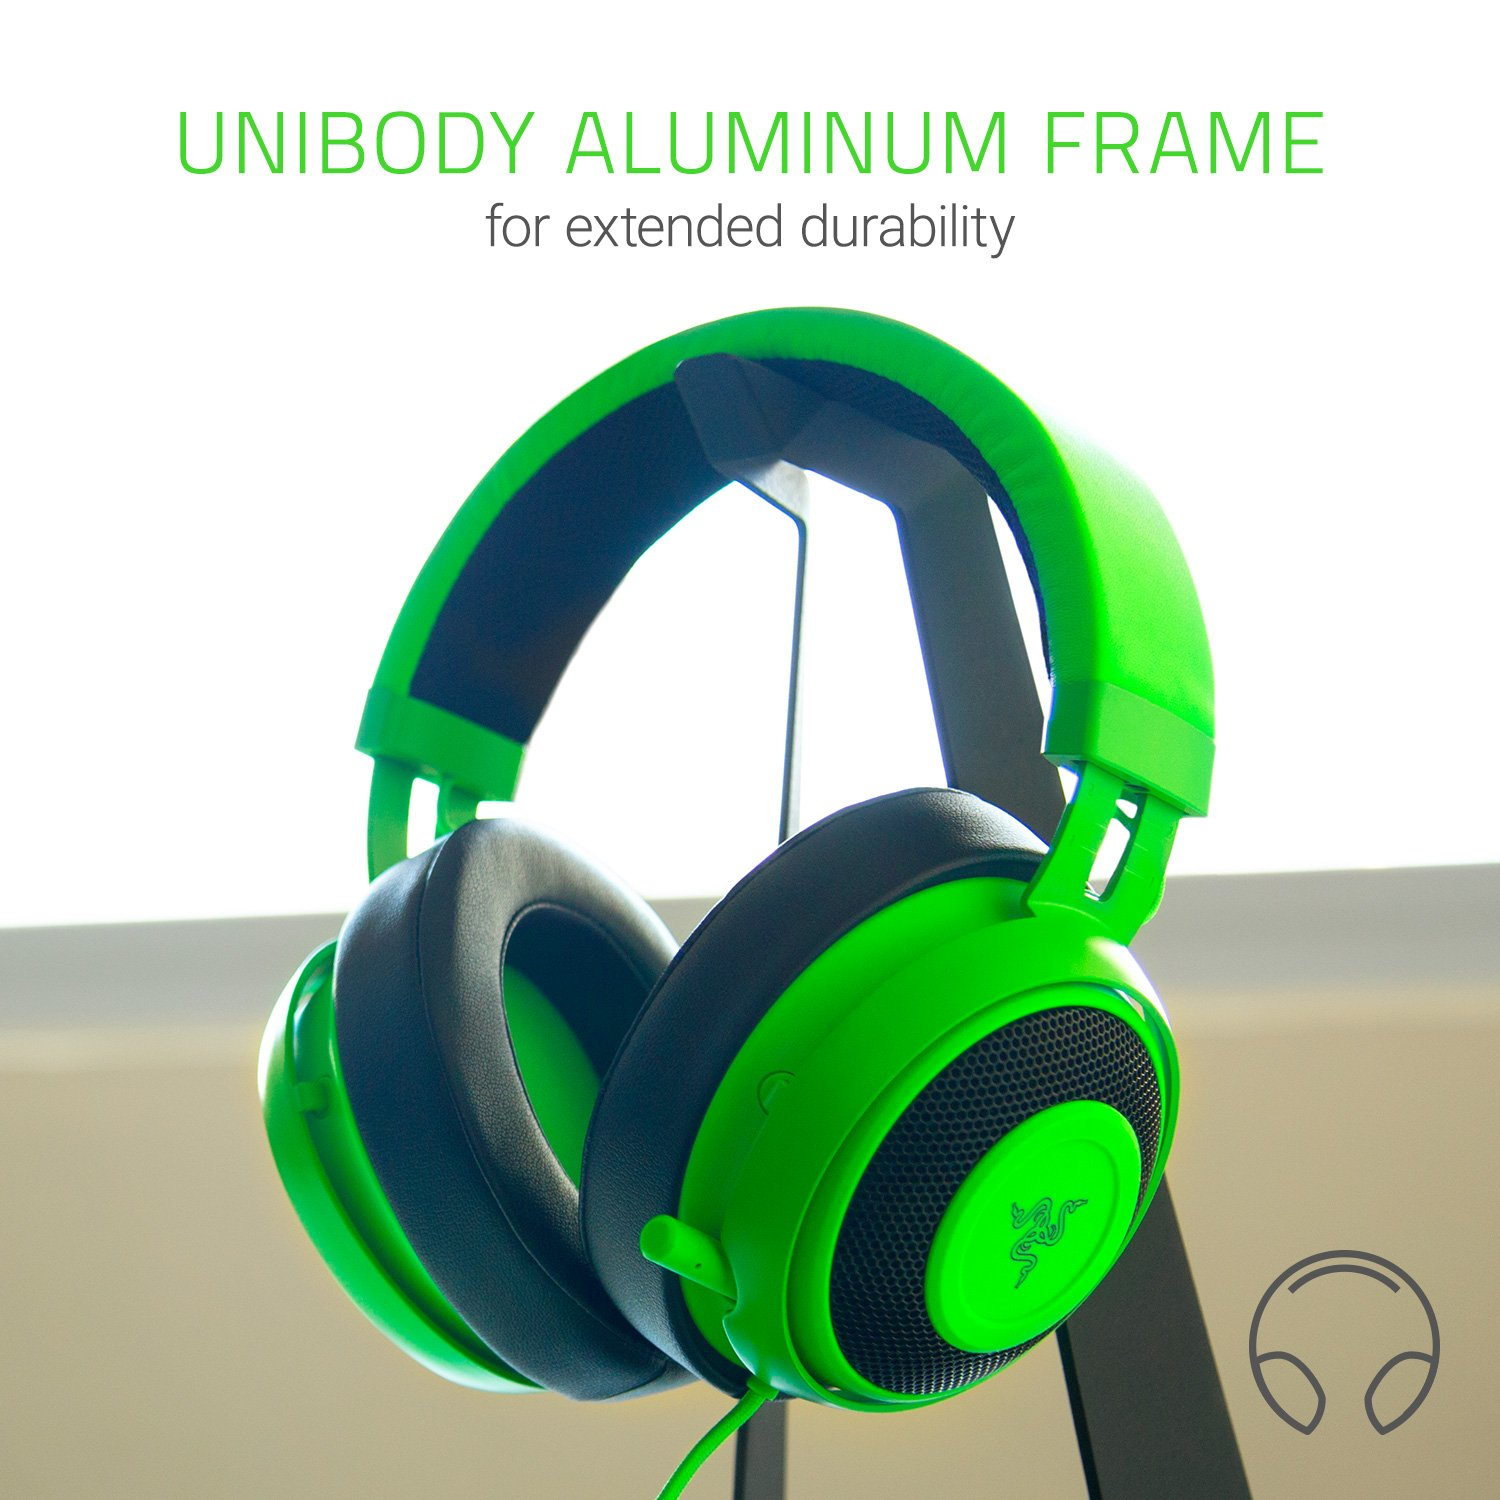 Razer Kraken Pro V2: Lightweight Aluminum Headband - Retractable Mic - In-Line Remote - Gaming Headset Works with PC, PS4, Xbox One, Switch, & Mobile Devices - Green by Razer (Image #3)